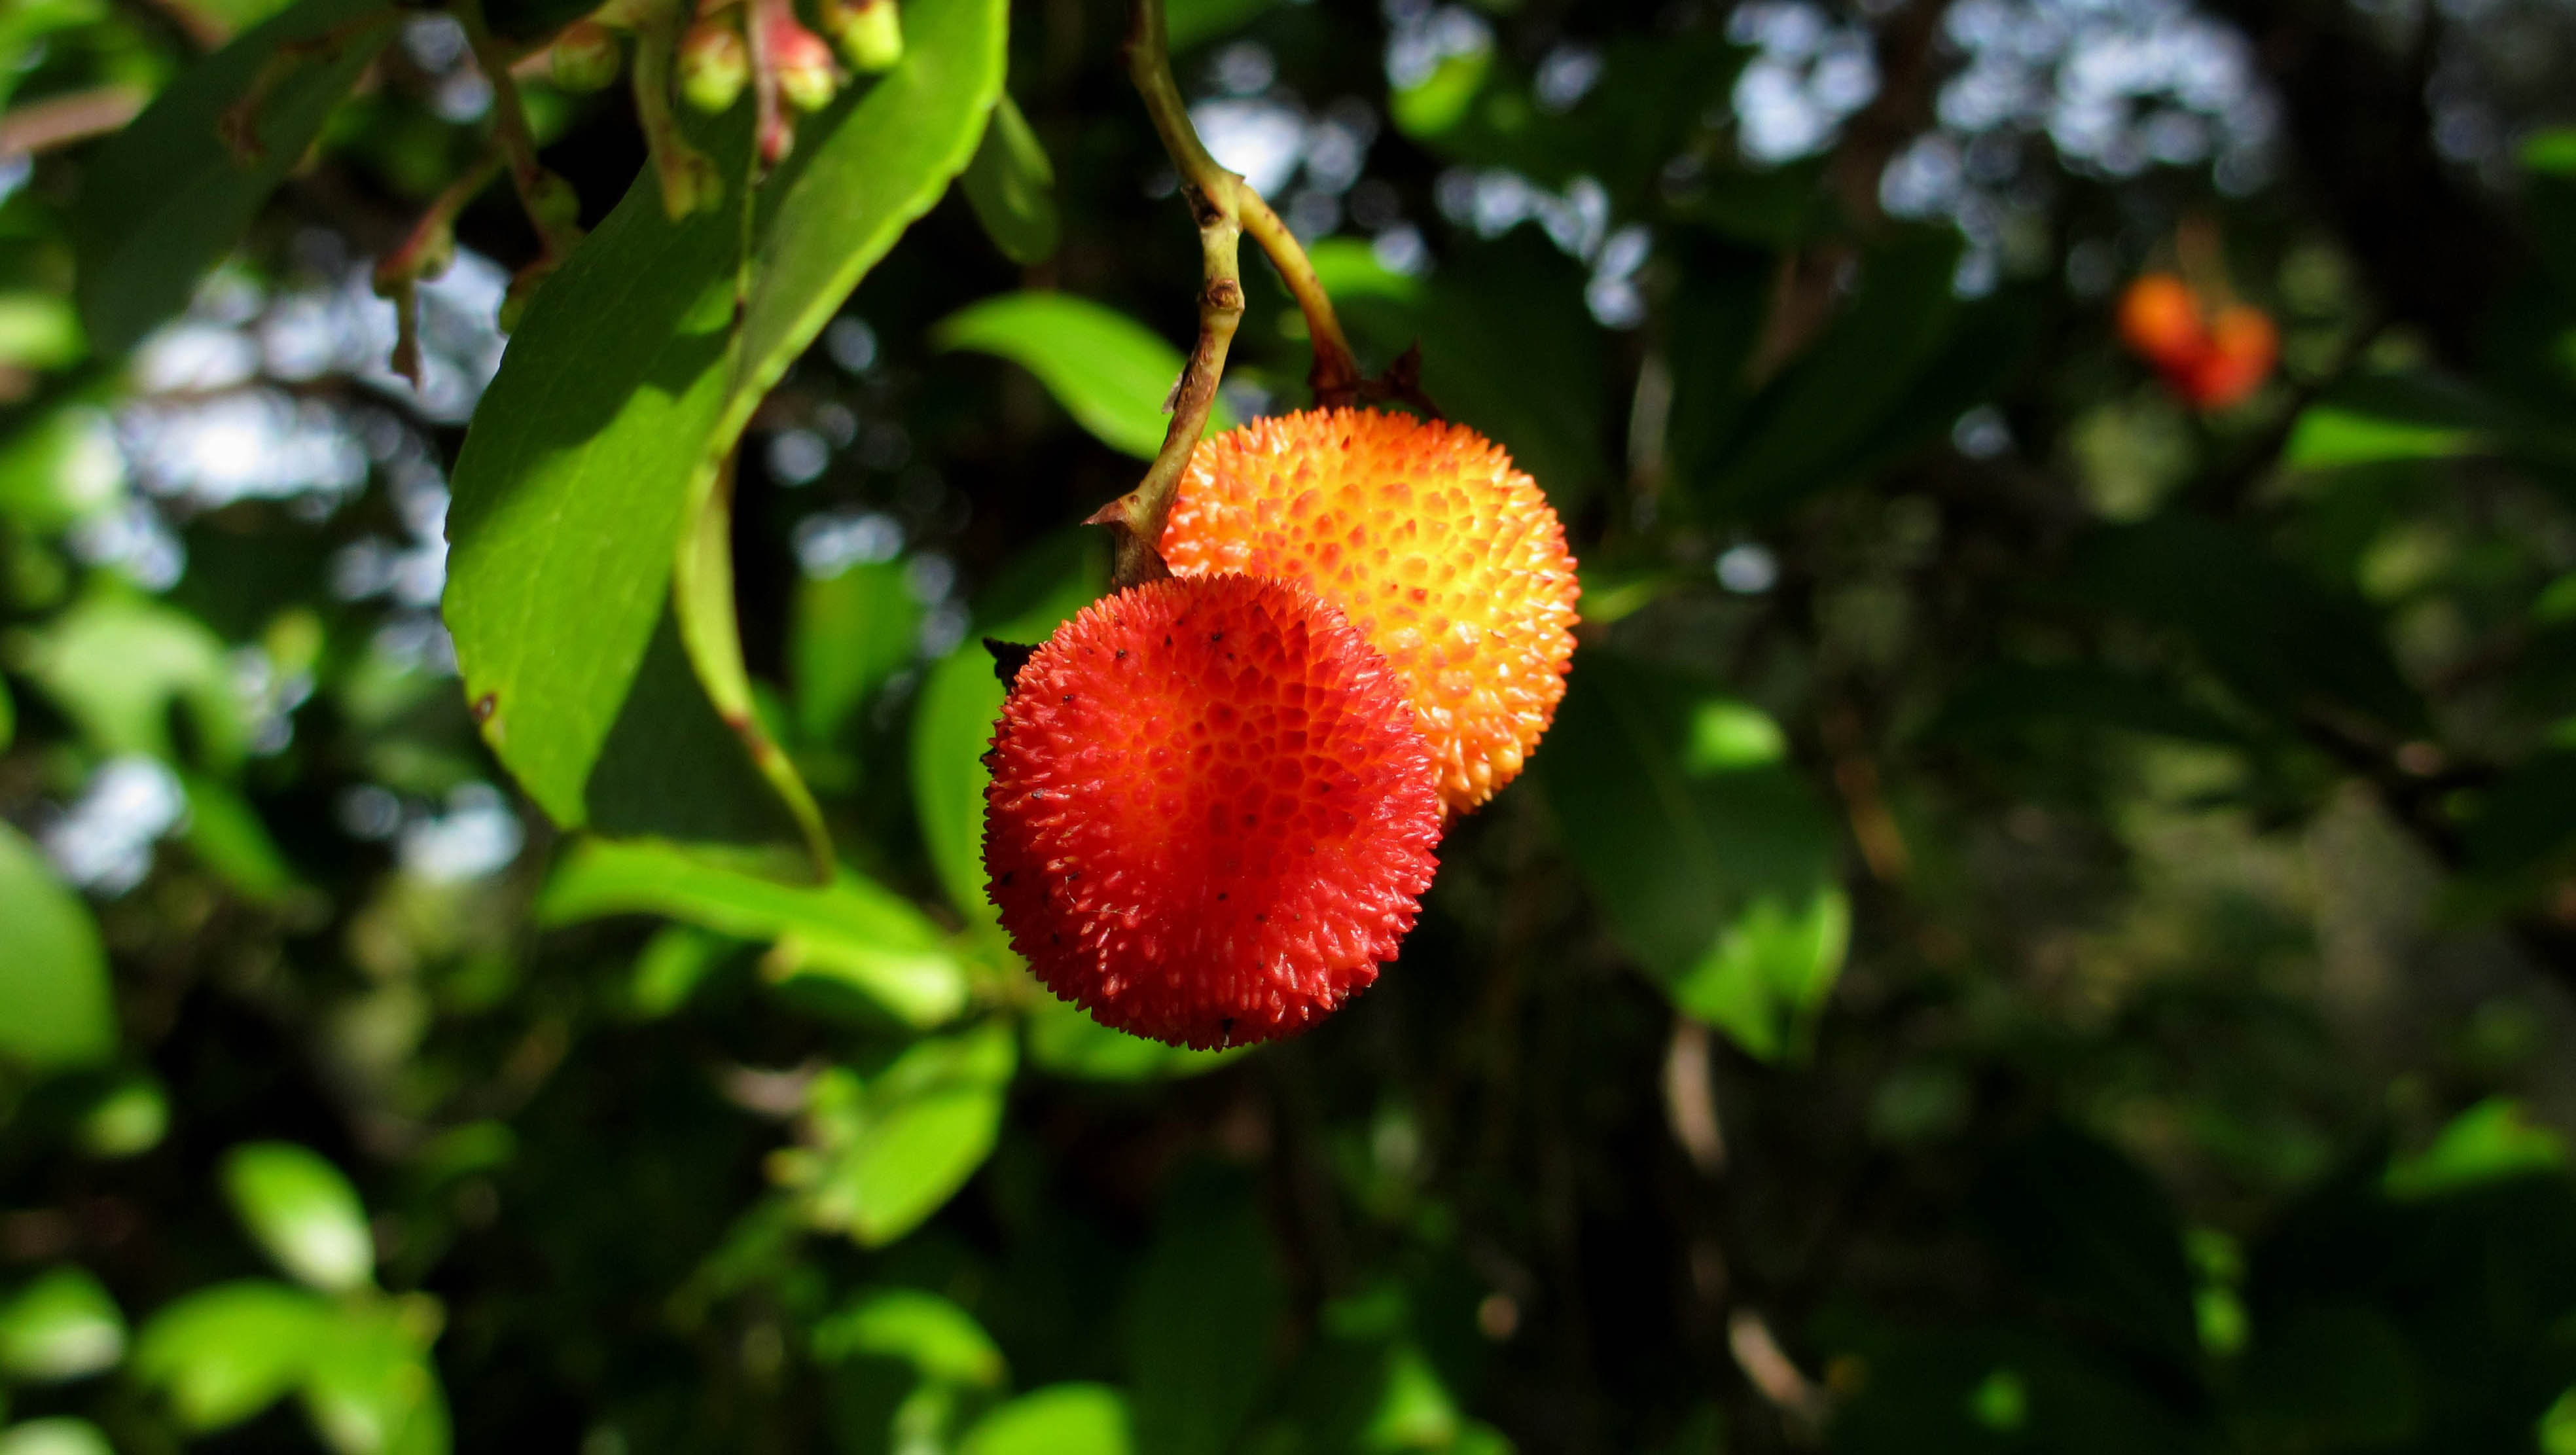 Genetic diversity of <i>Arbutus unedo</i>